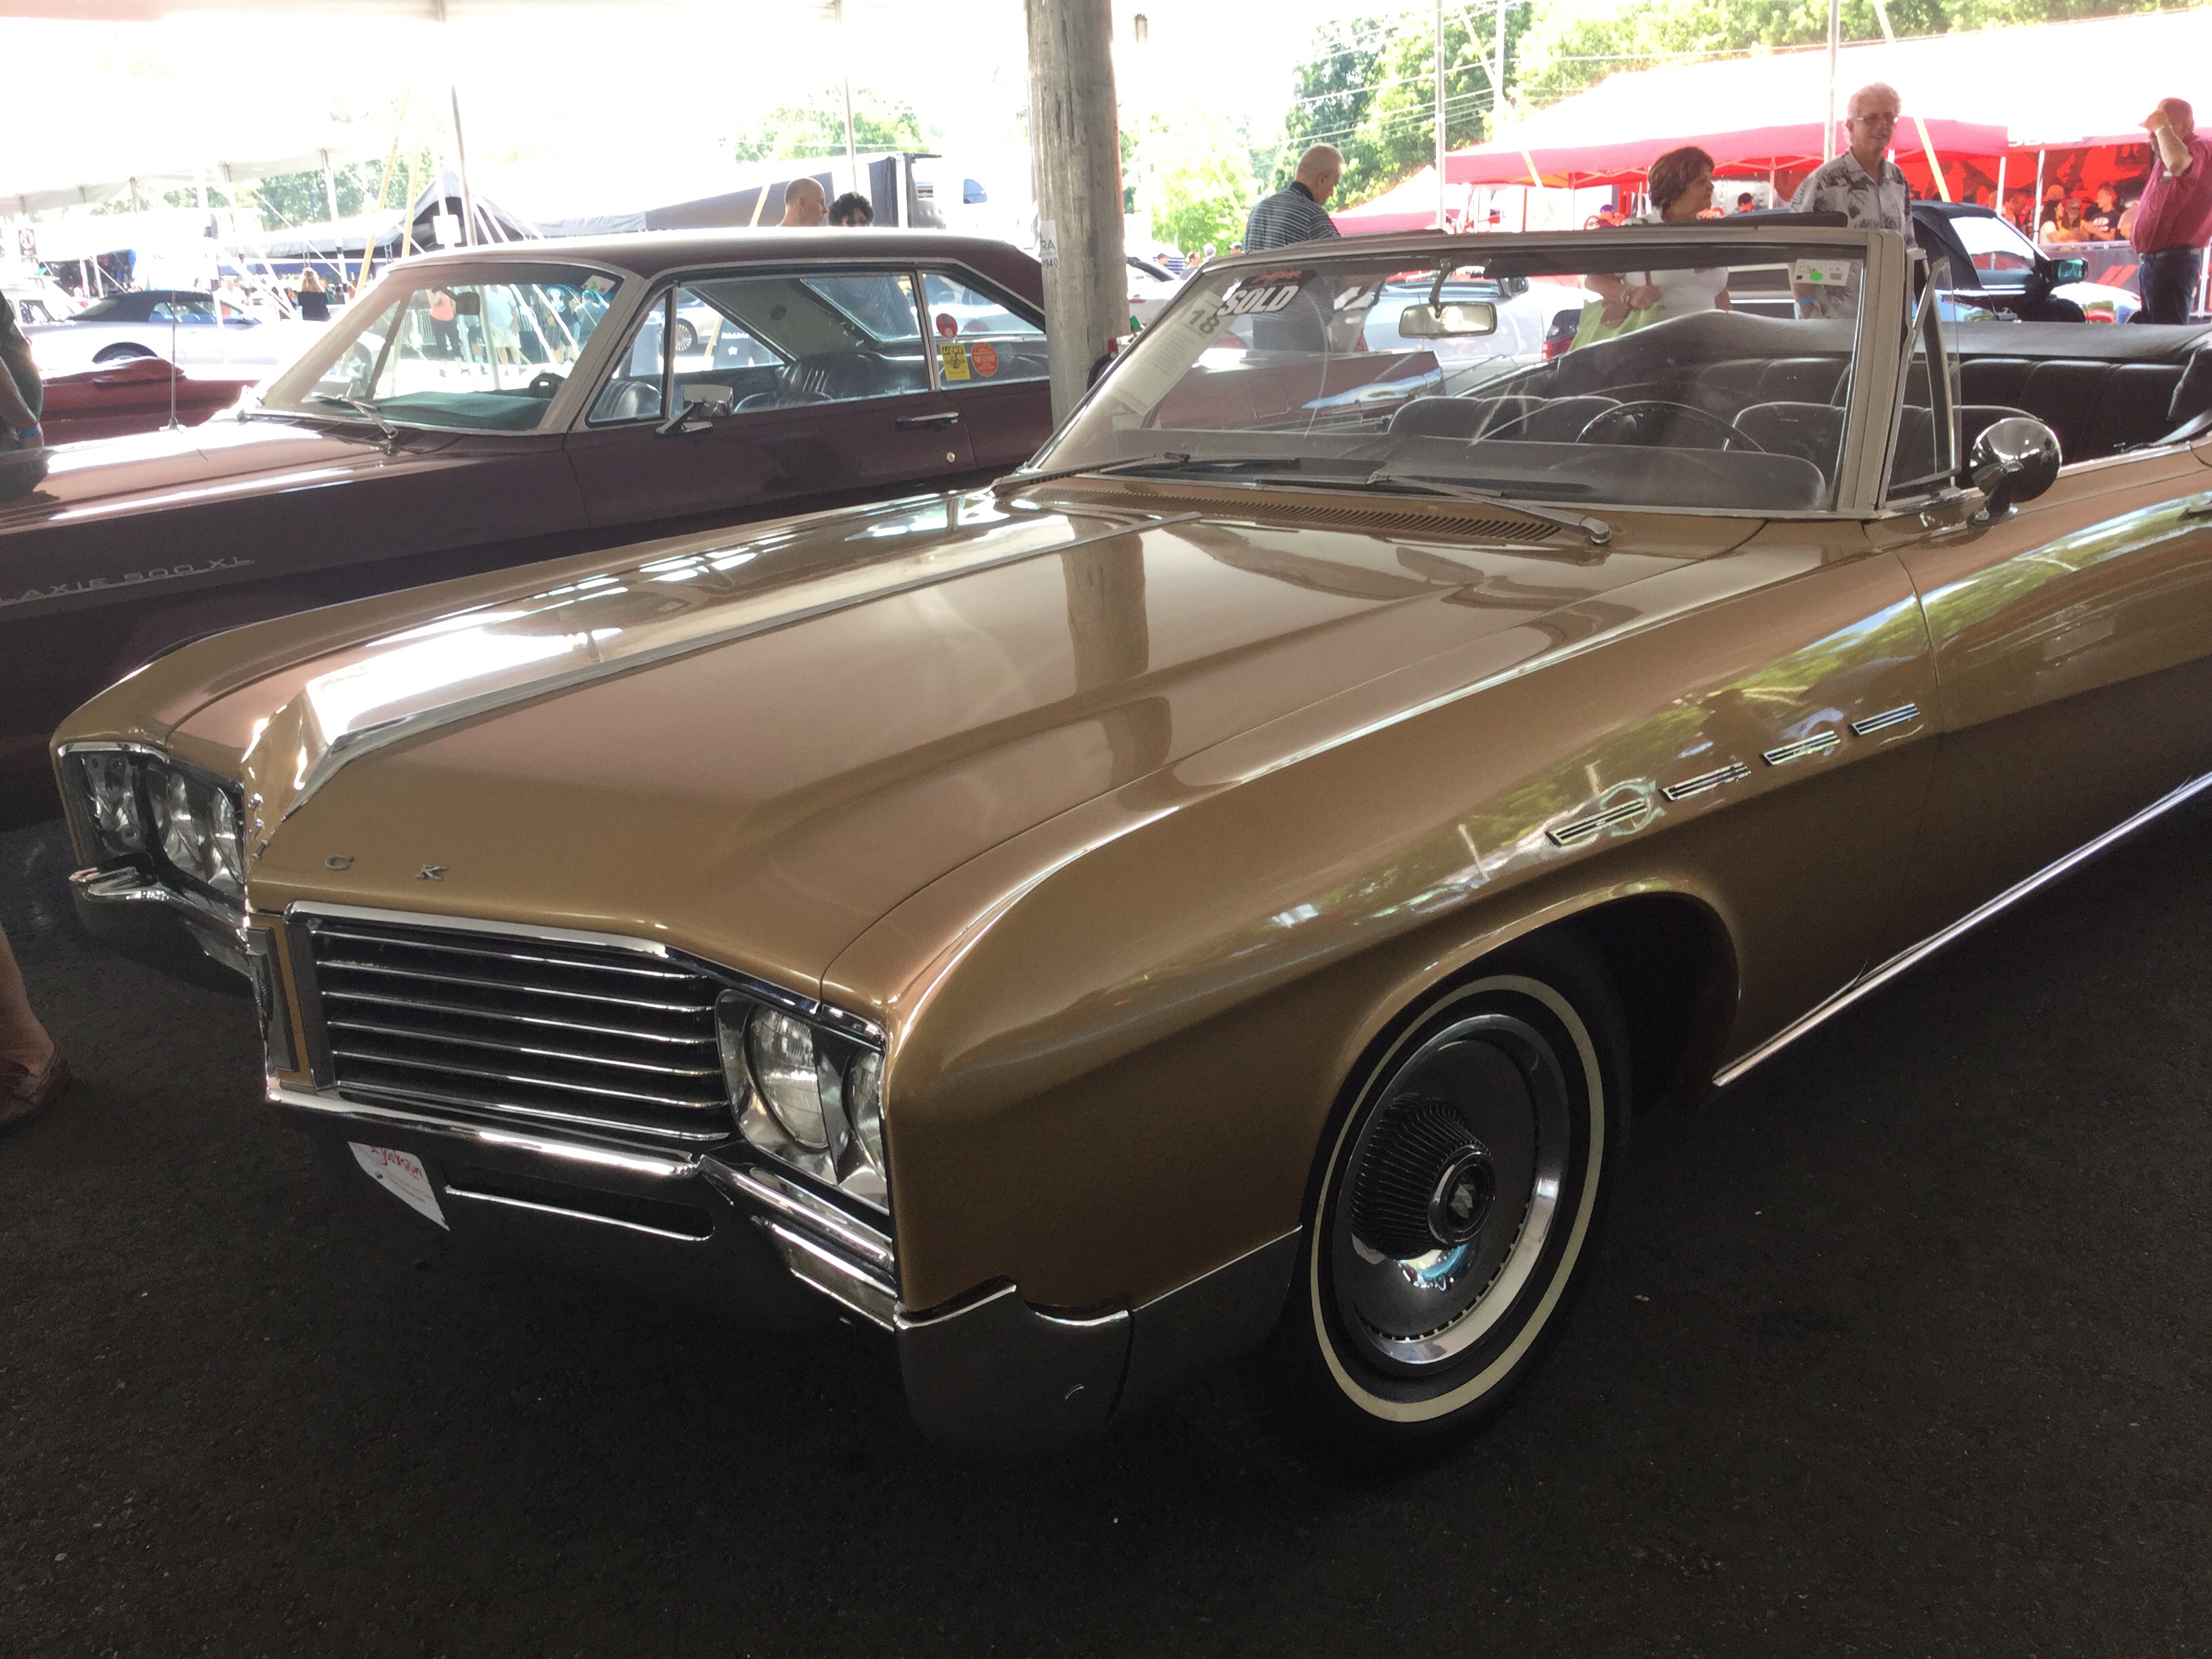 1969 Buick Electra 225 Values | Hagerty Valuation Tool®